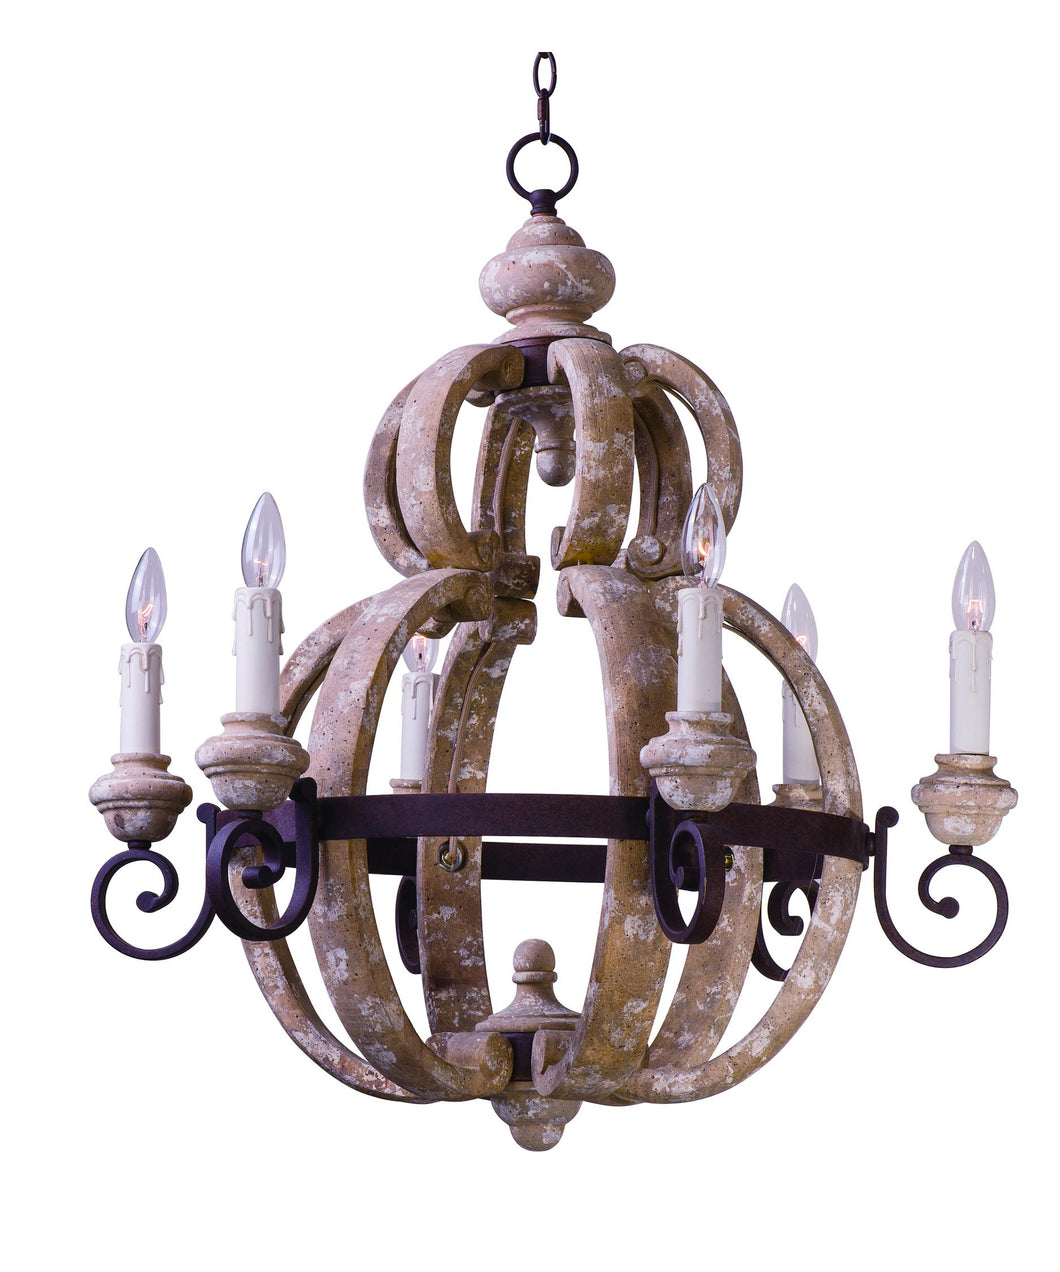 OLDE WORLD WOOD AND WROUGHT IRON CHANDELIER